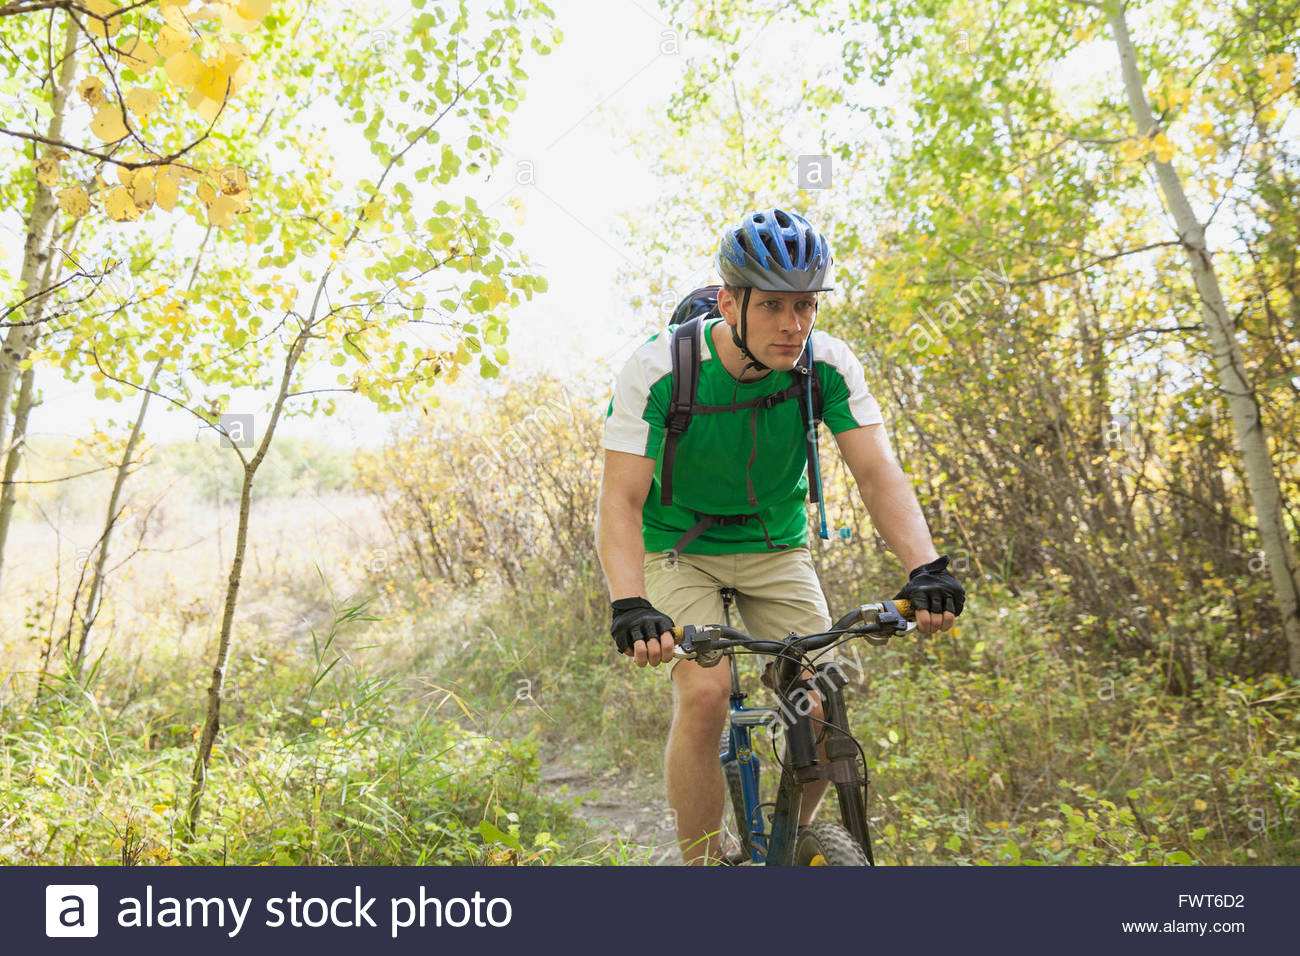 Man with serious look riding mountain bicycle. - Stock Image